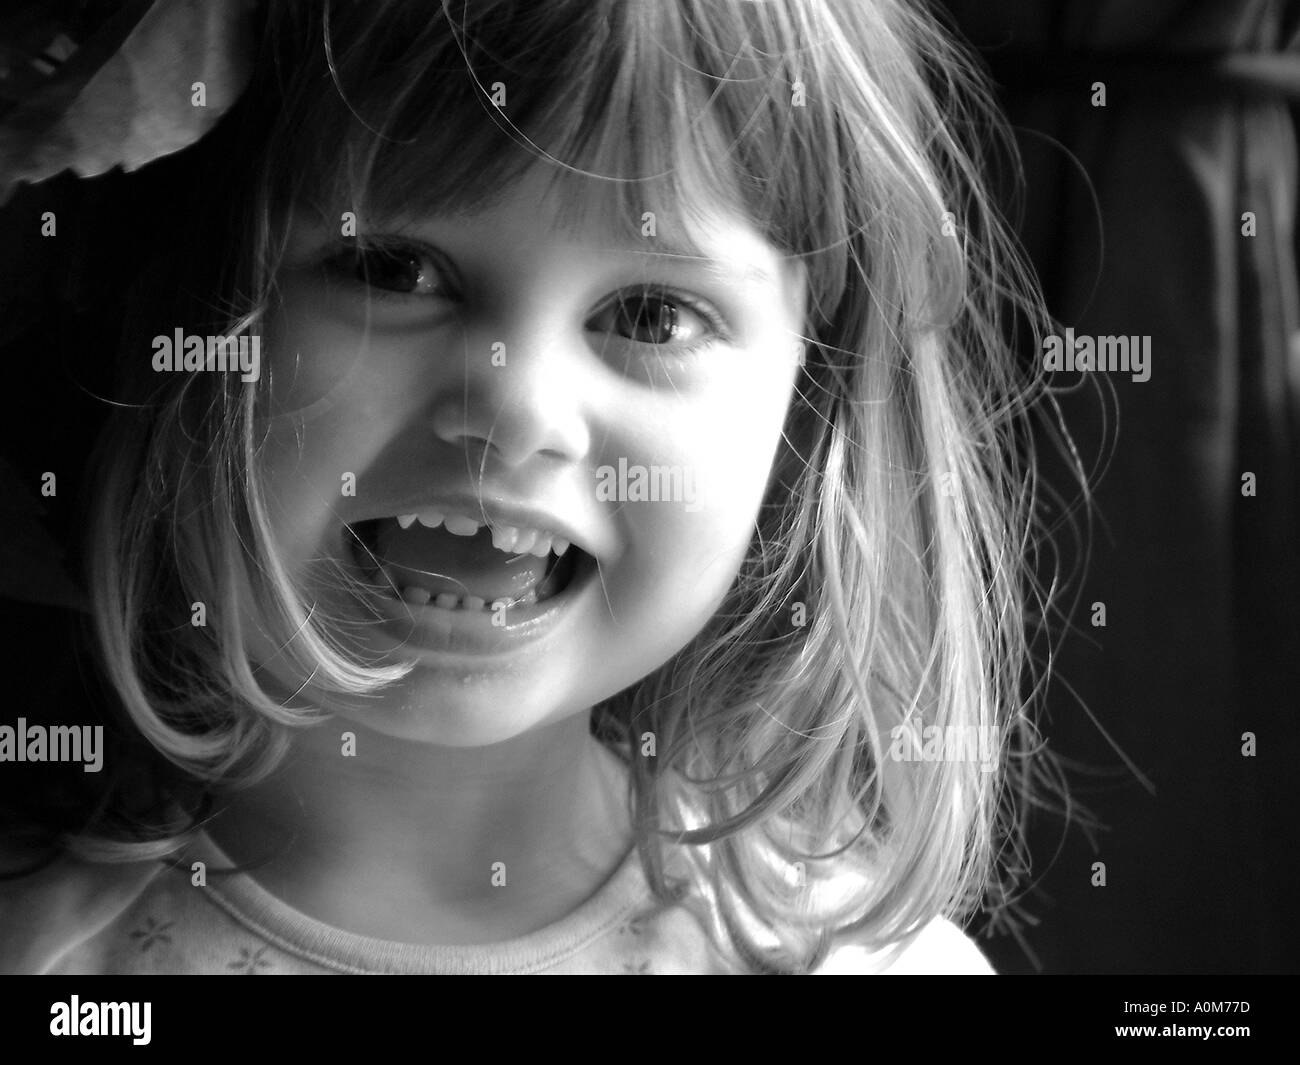 young girl - Stock Image